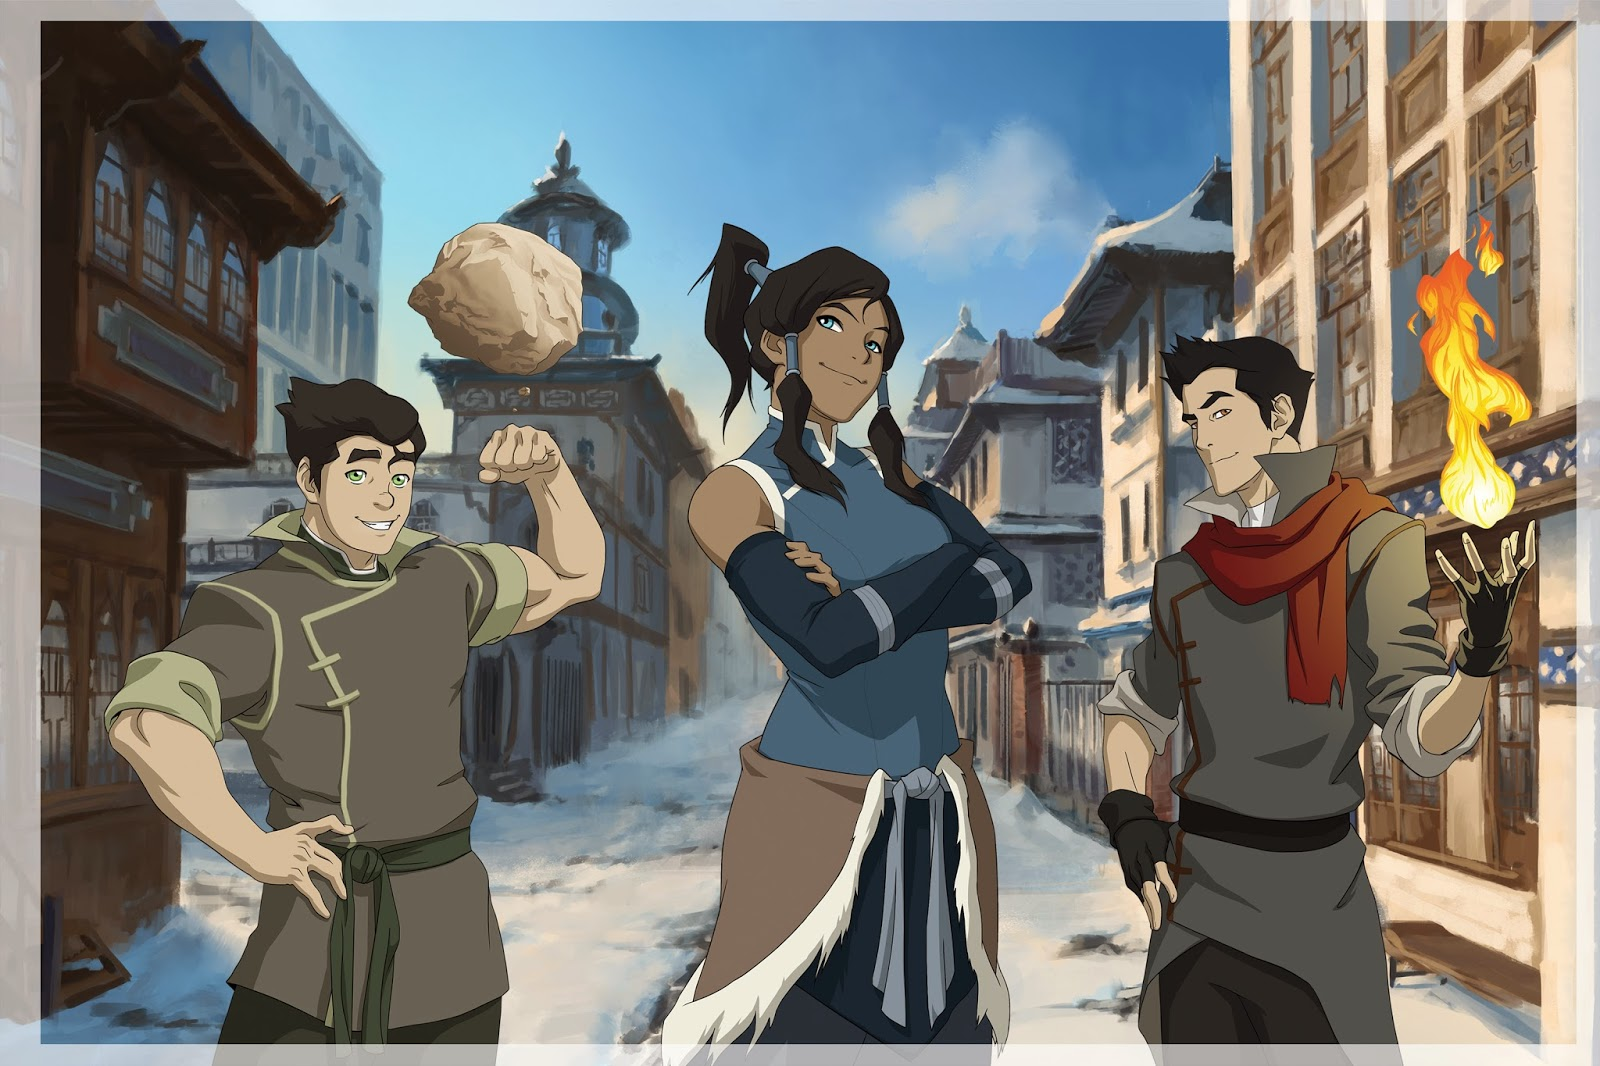 Galaxy S4 Fall Wallpaper Legend Of Korra Season 1 13 Widescreen Wallpaper Animewp Com